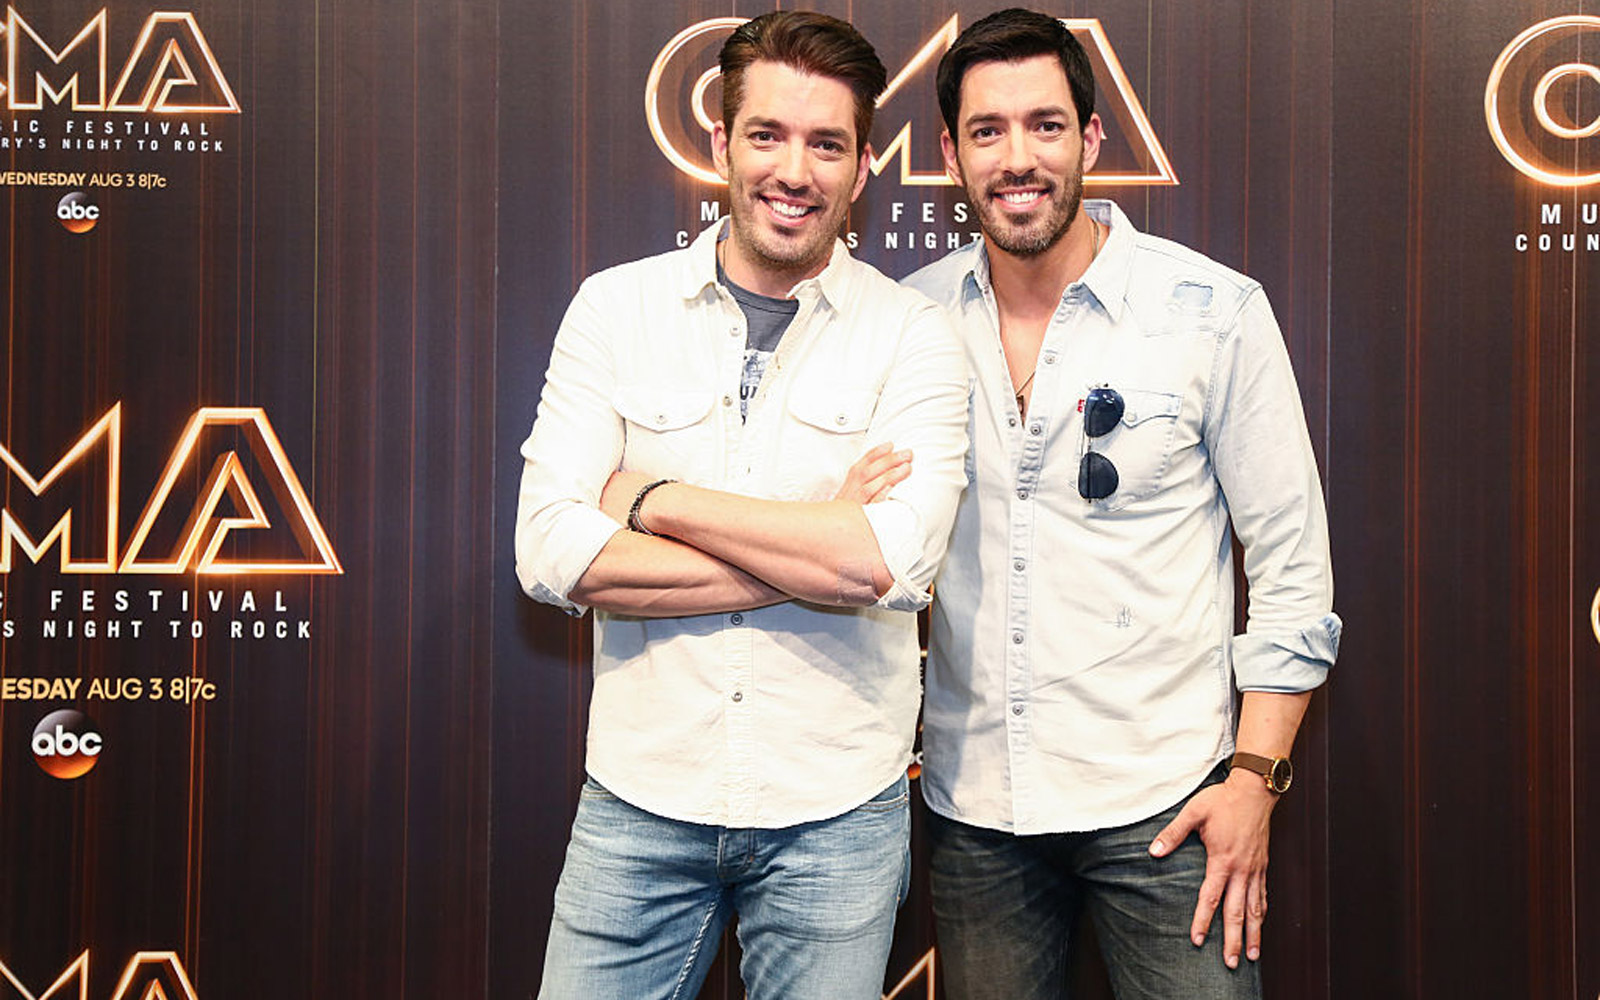 The One Thing the Property Brothers Say You Should Look for When Buying Your First Home